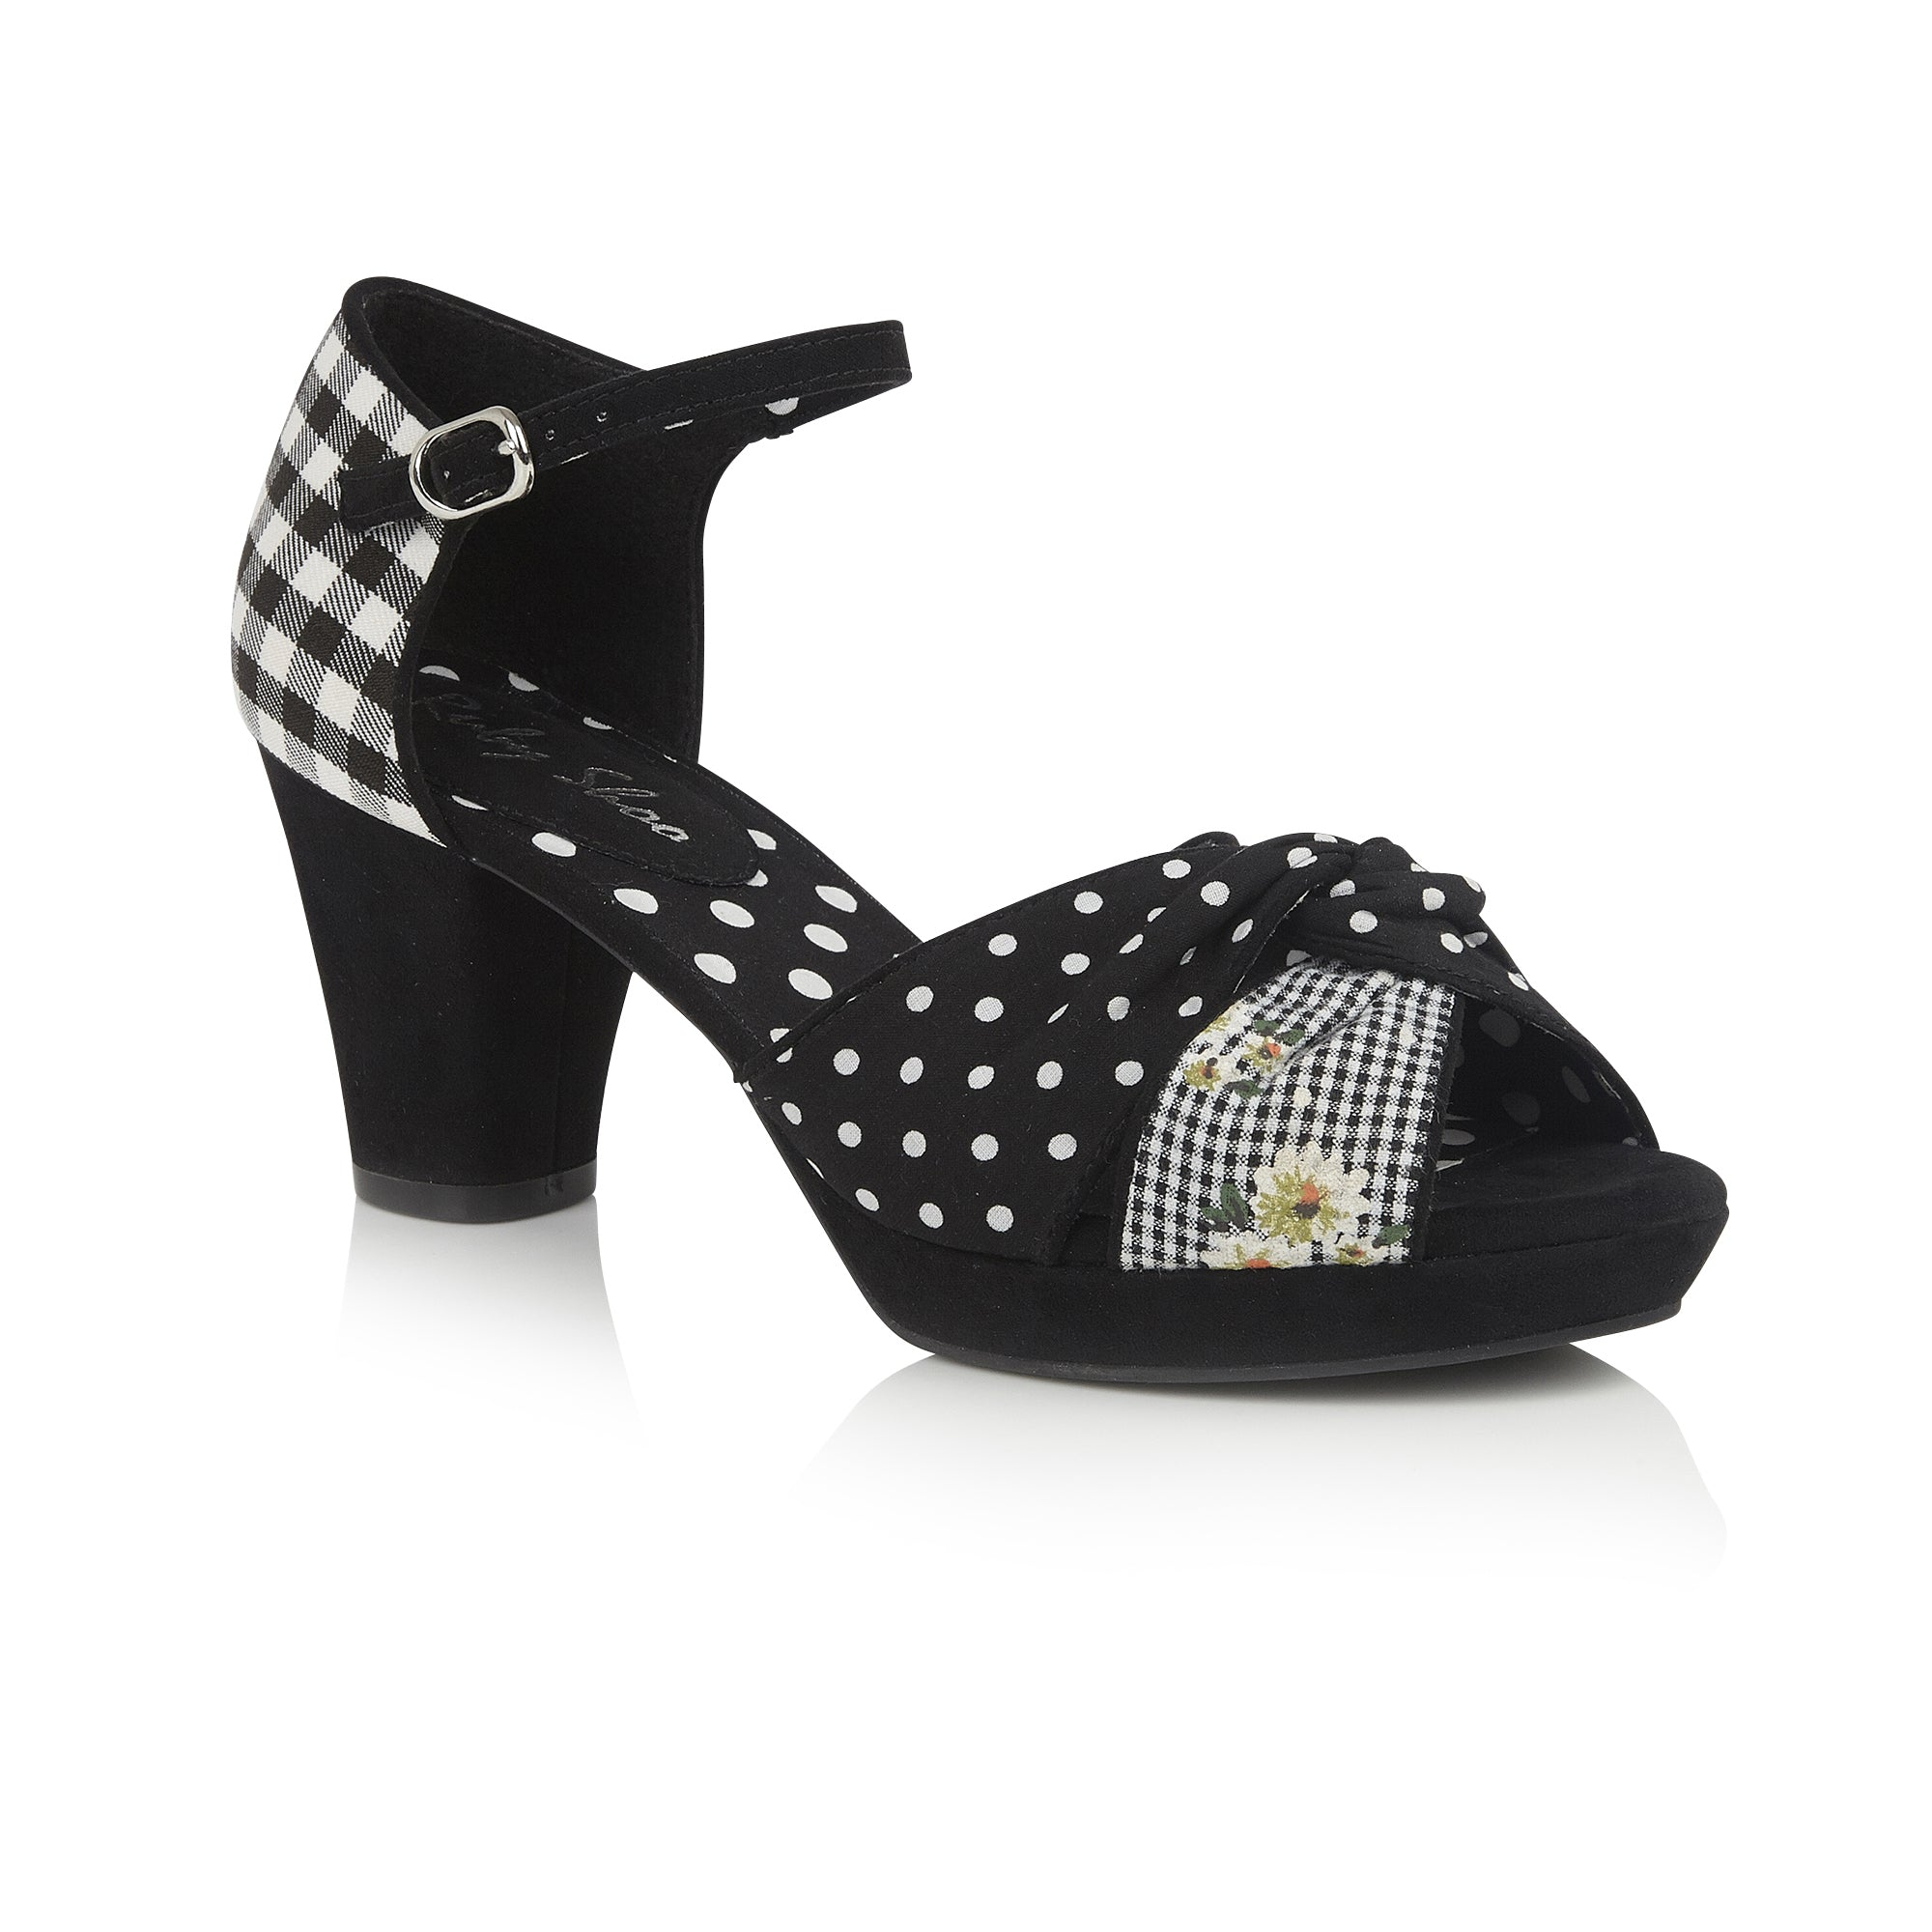 9c8c71f4a66 Ruby Shoo Black And White Strap Open Toe Xanthe Heels